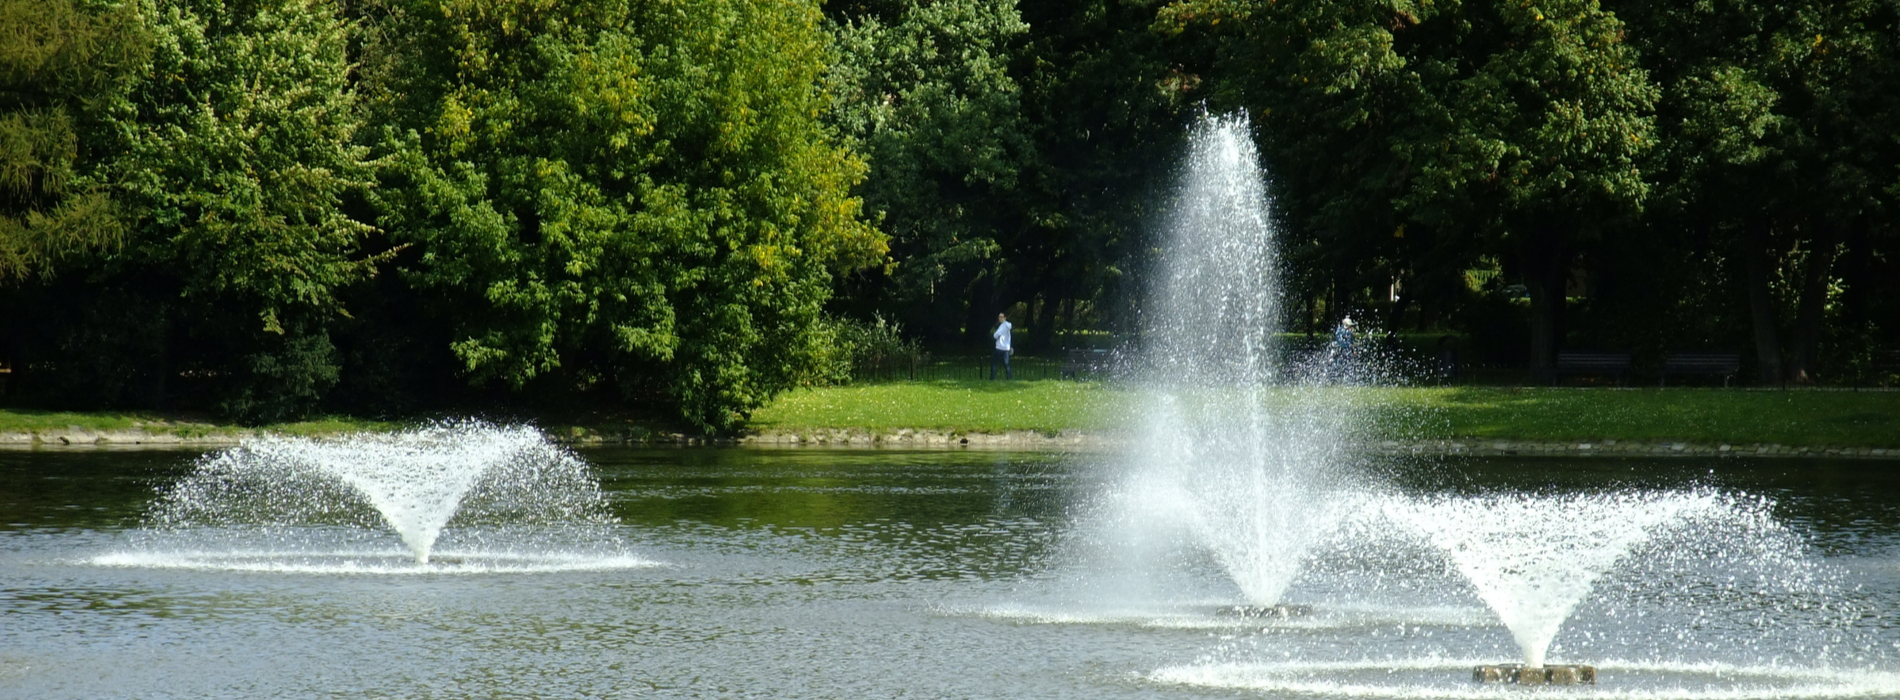 Winter Park Fountains and Aeration Systems